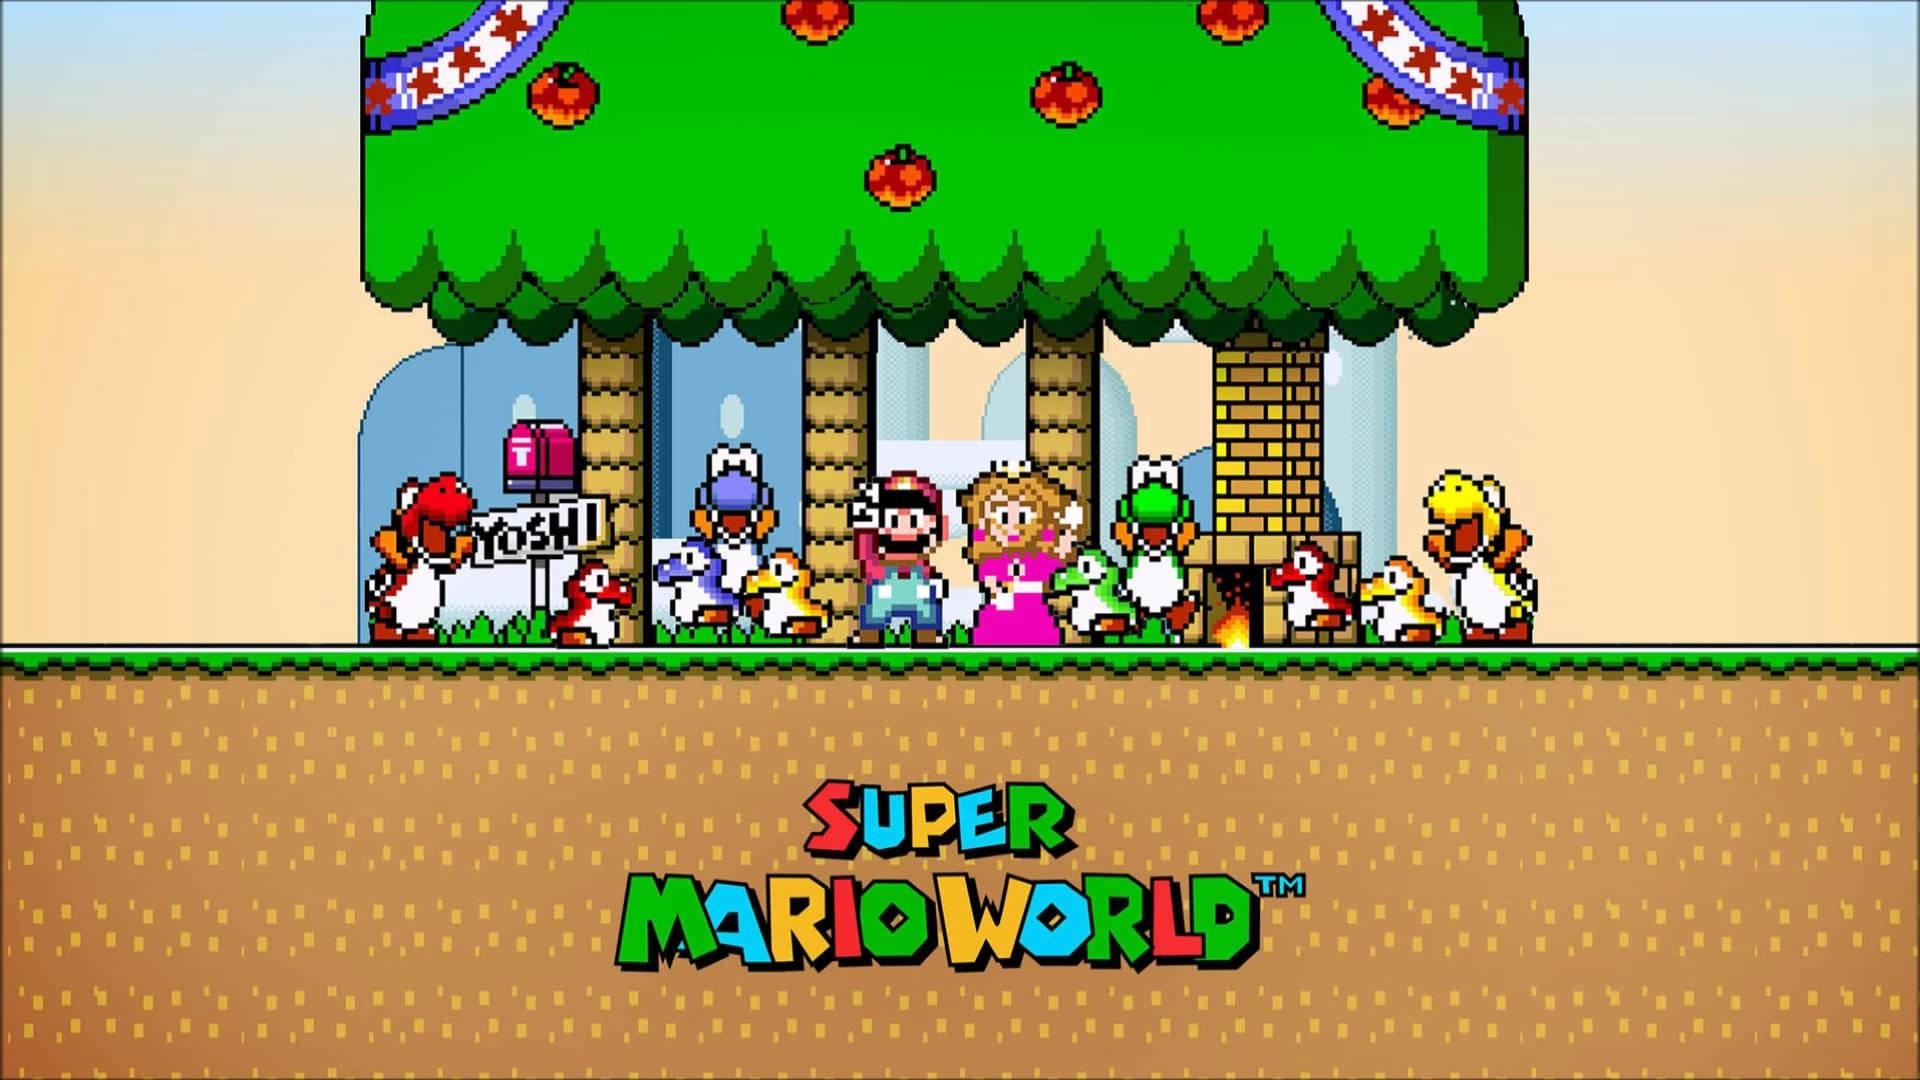 super mario world: return to dinosaur land hd wallpaper